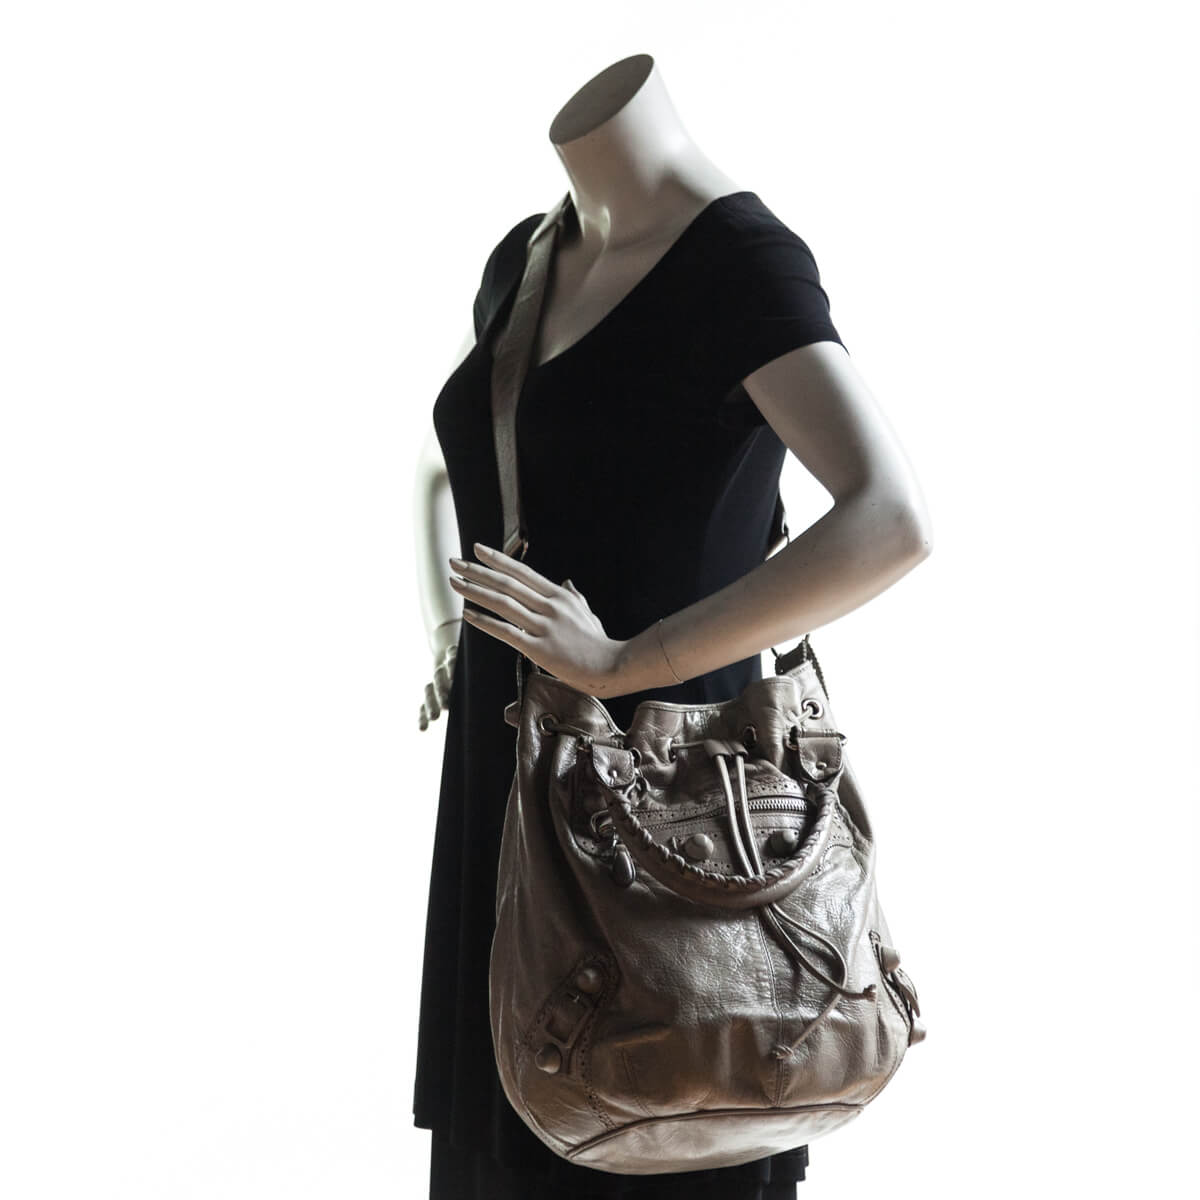 908a7ff10123 ... Balenciaga Galet Lambskin Giant Hardware Pom Pon Bag - LOVE that BAG -  Preowned Authentic Designer